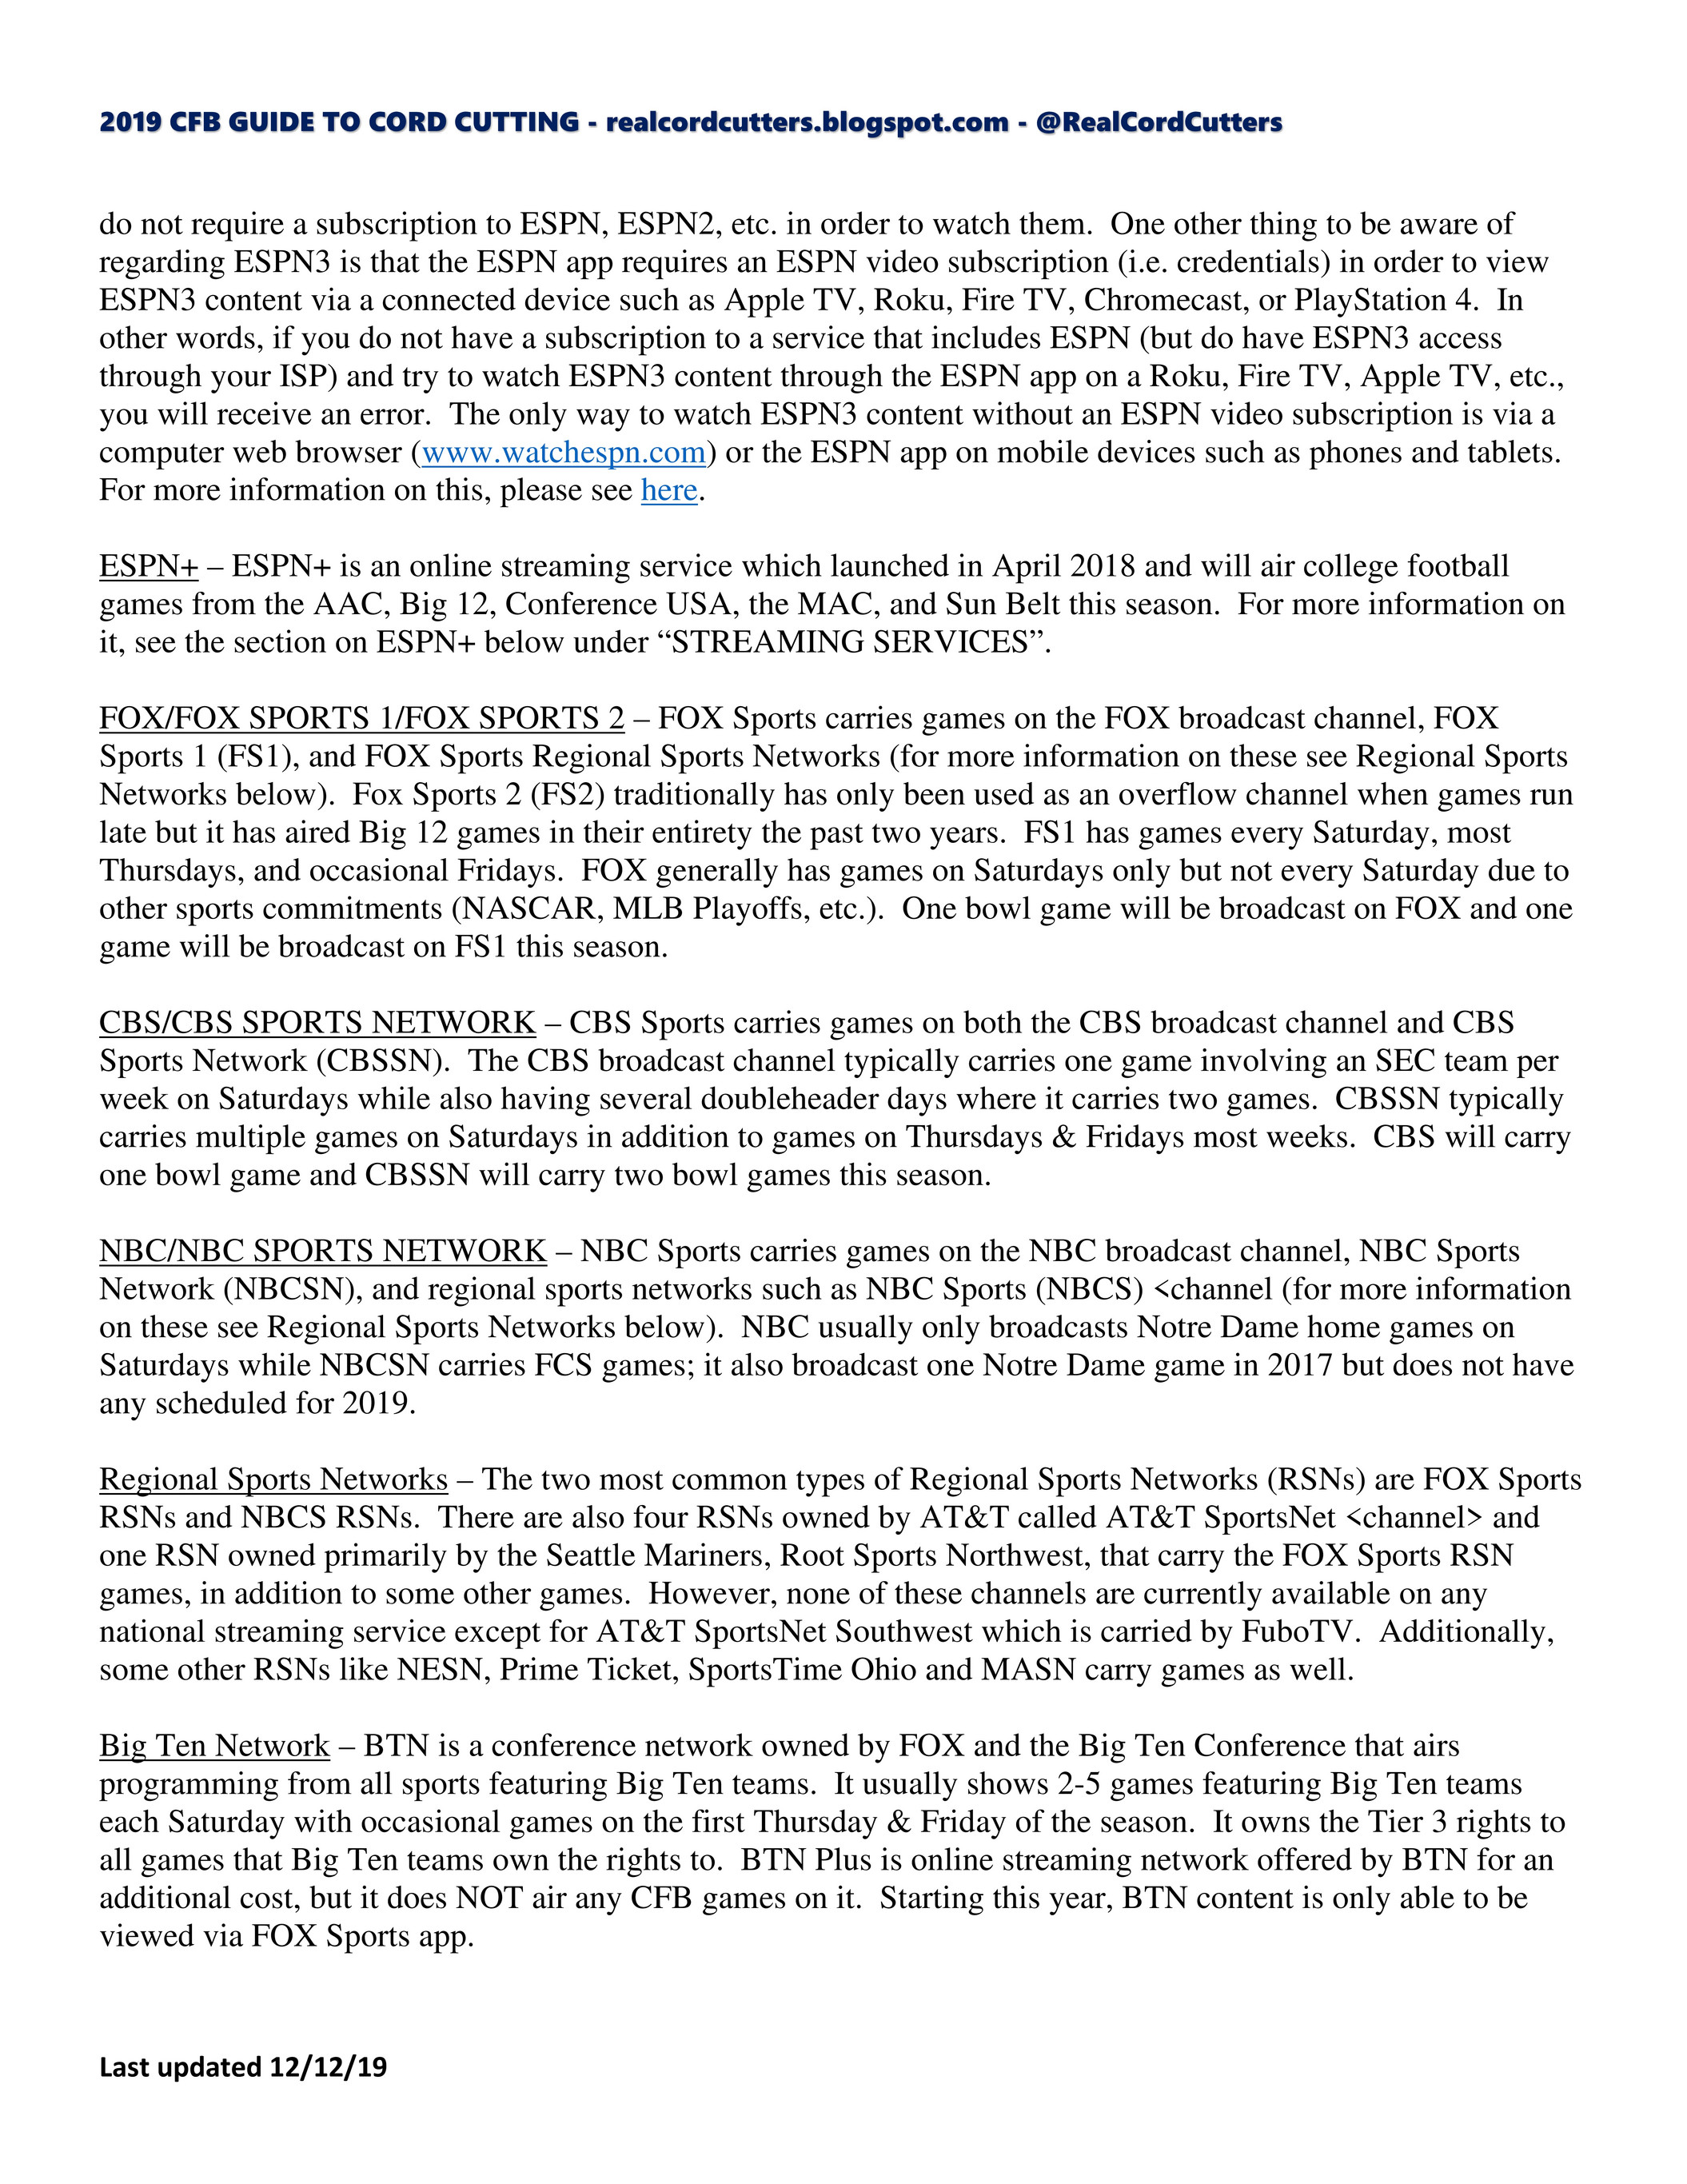 My Publications 2019 Cfb Guide To Cord Cutting Text Charts 8 18 19 Page 1 Created With Publitas Com